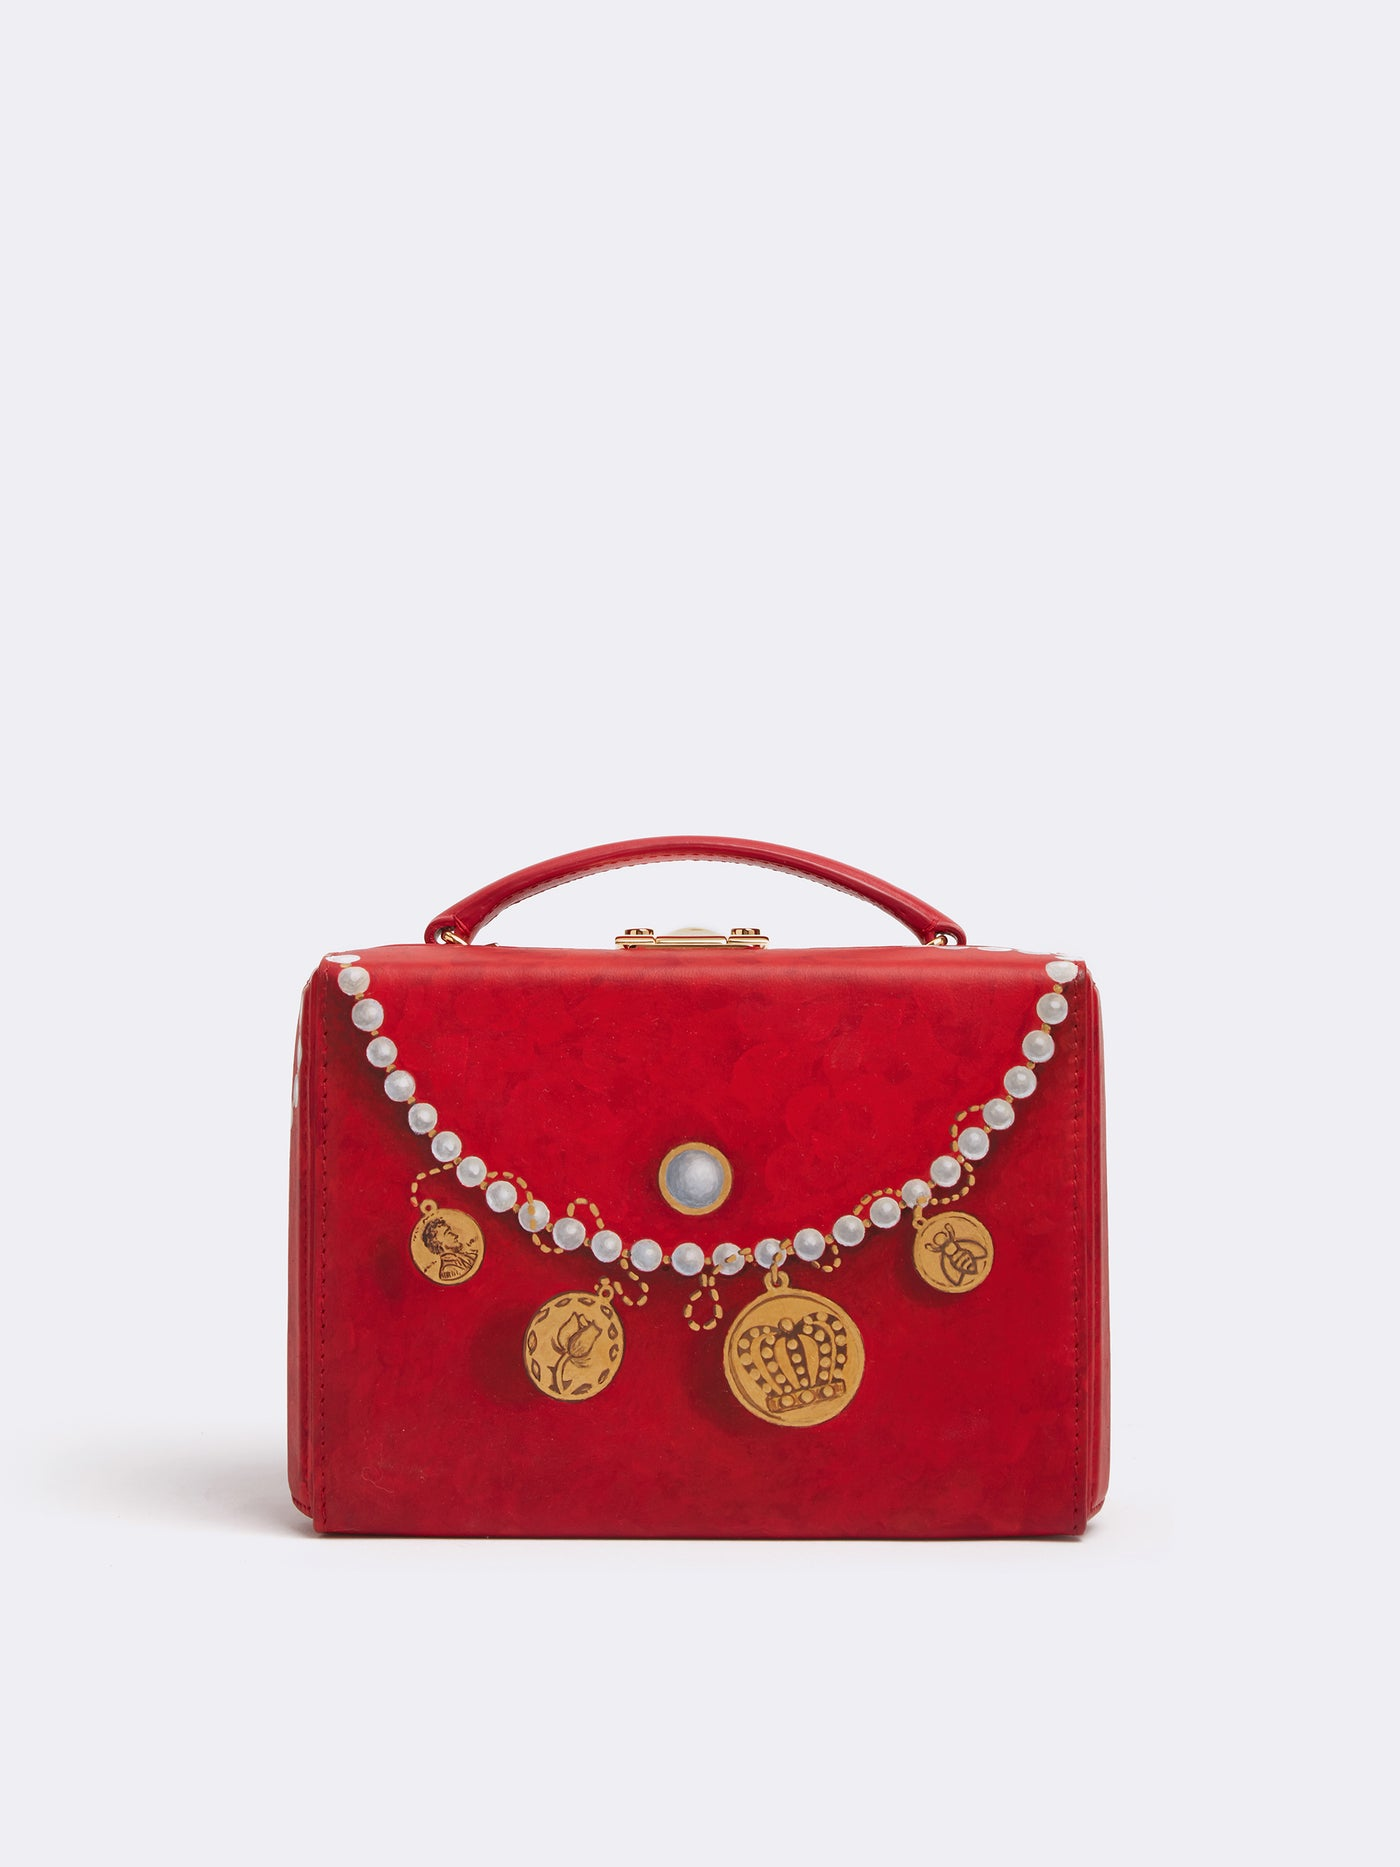 Sophie Matisse x Mark Cross Grace Small Leather Box Bag Smooth Calf MC Red / Pearl Front